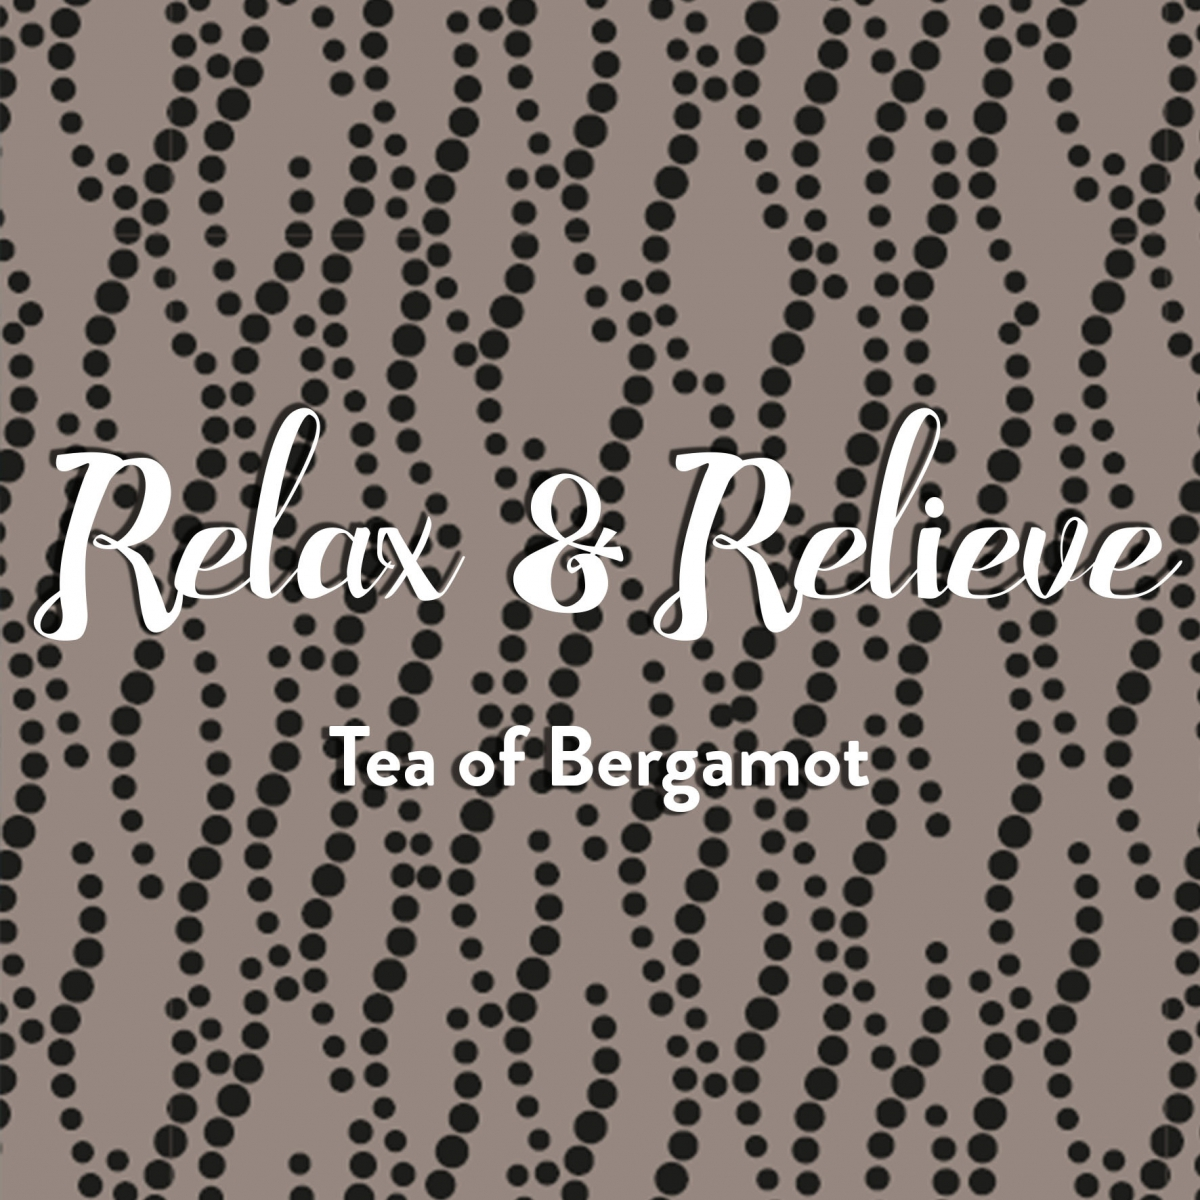 scented-candles-Spaas-Relax-Relieve-scent-bergamot-tea